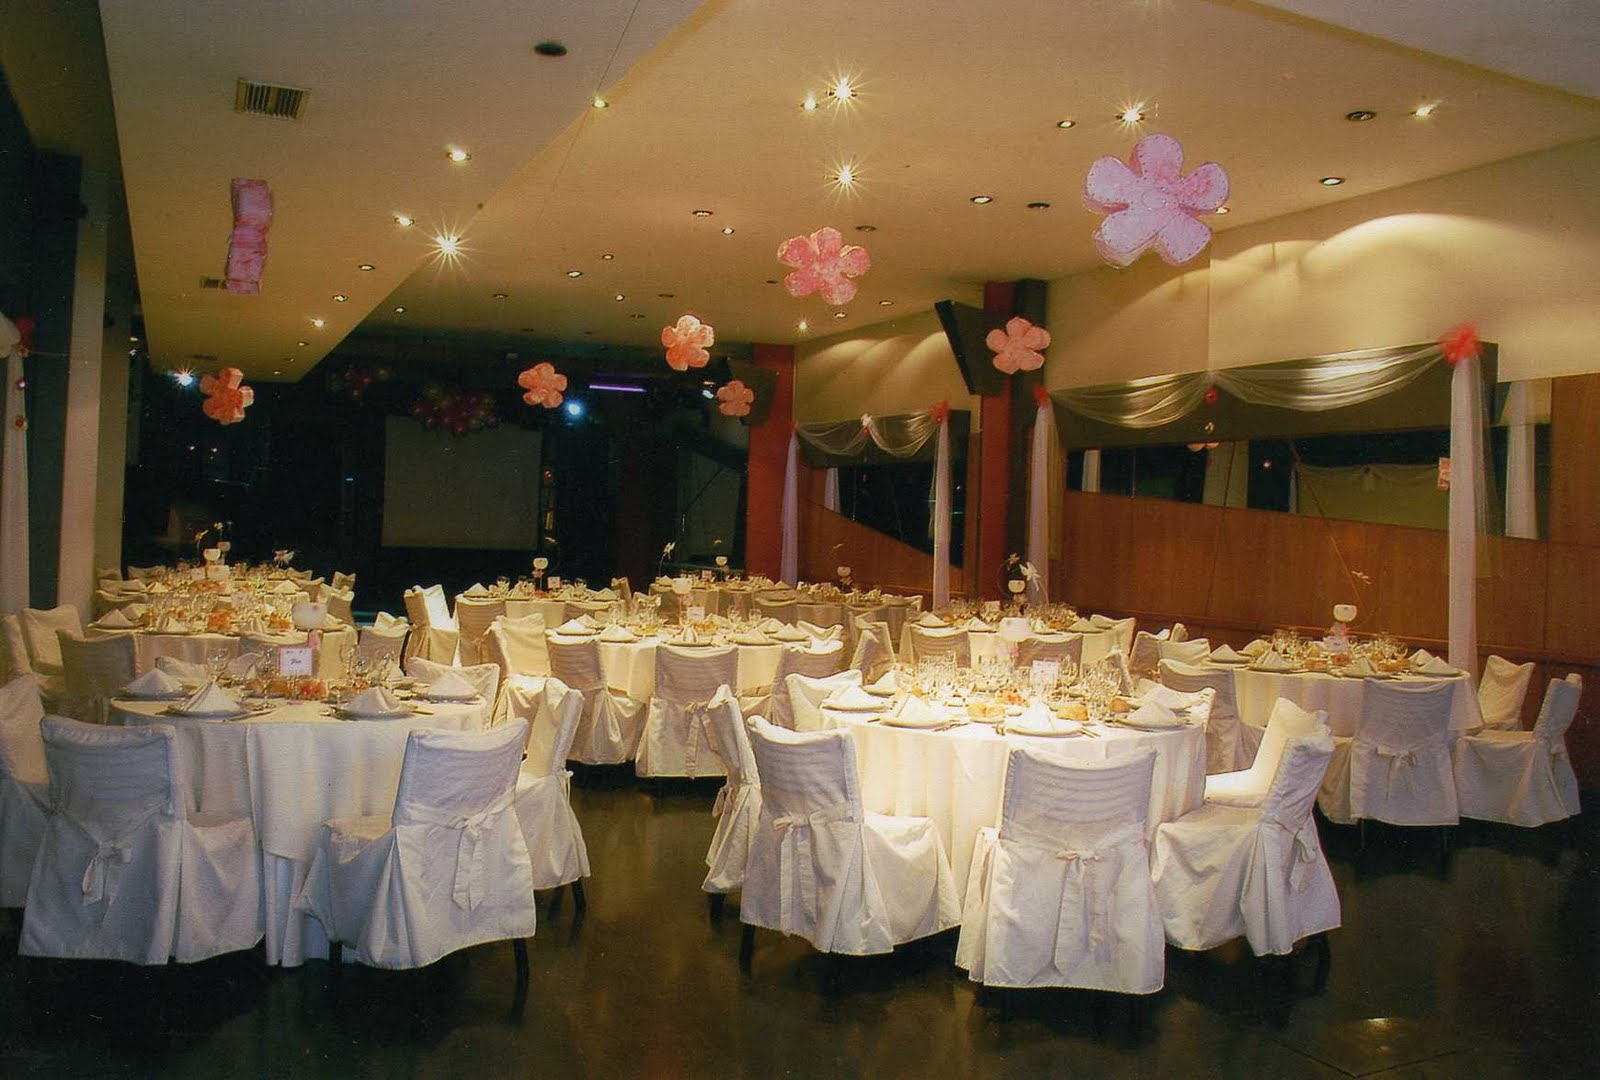 Matrimonios for Decoracion para el salon de casa